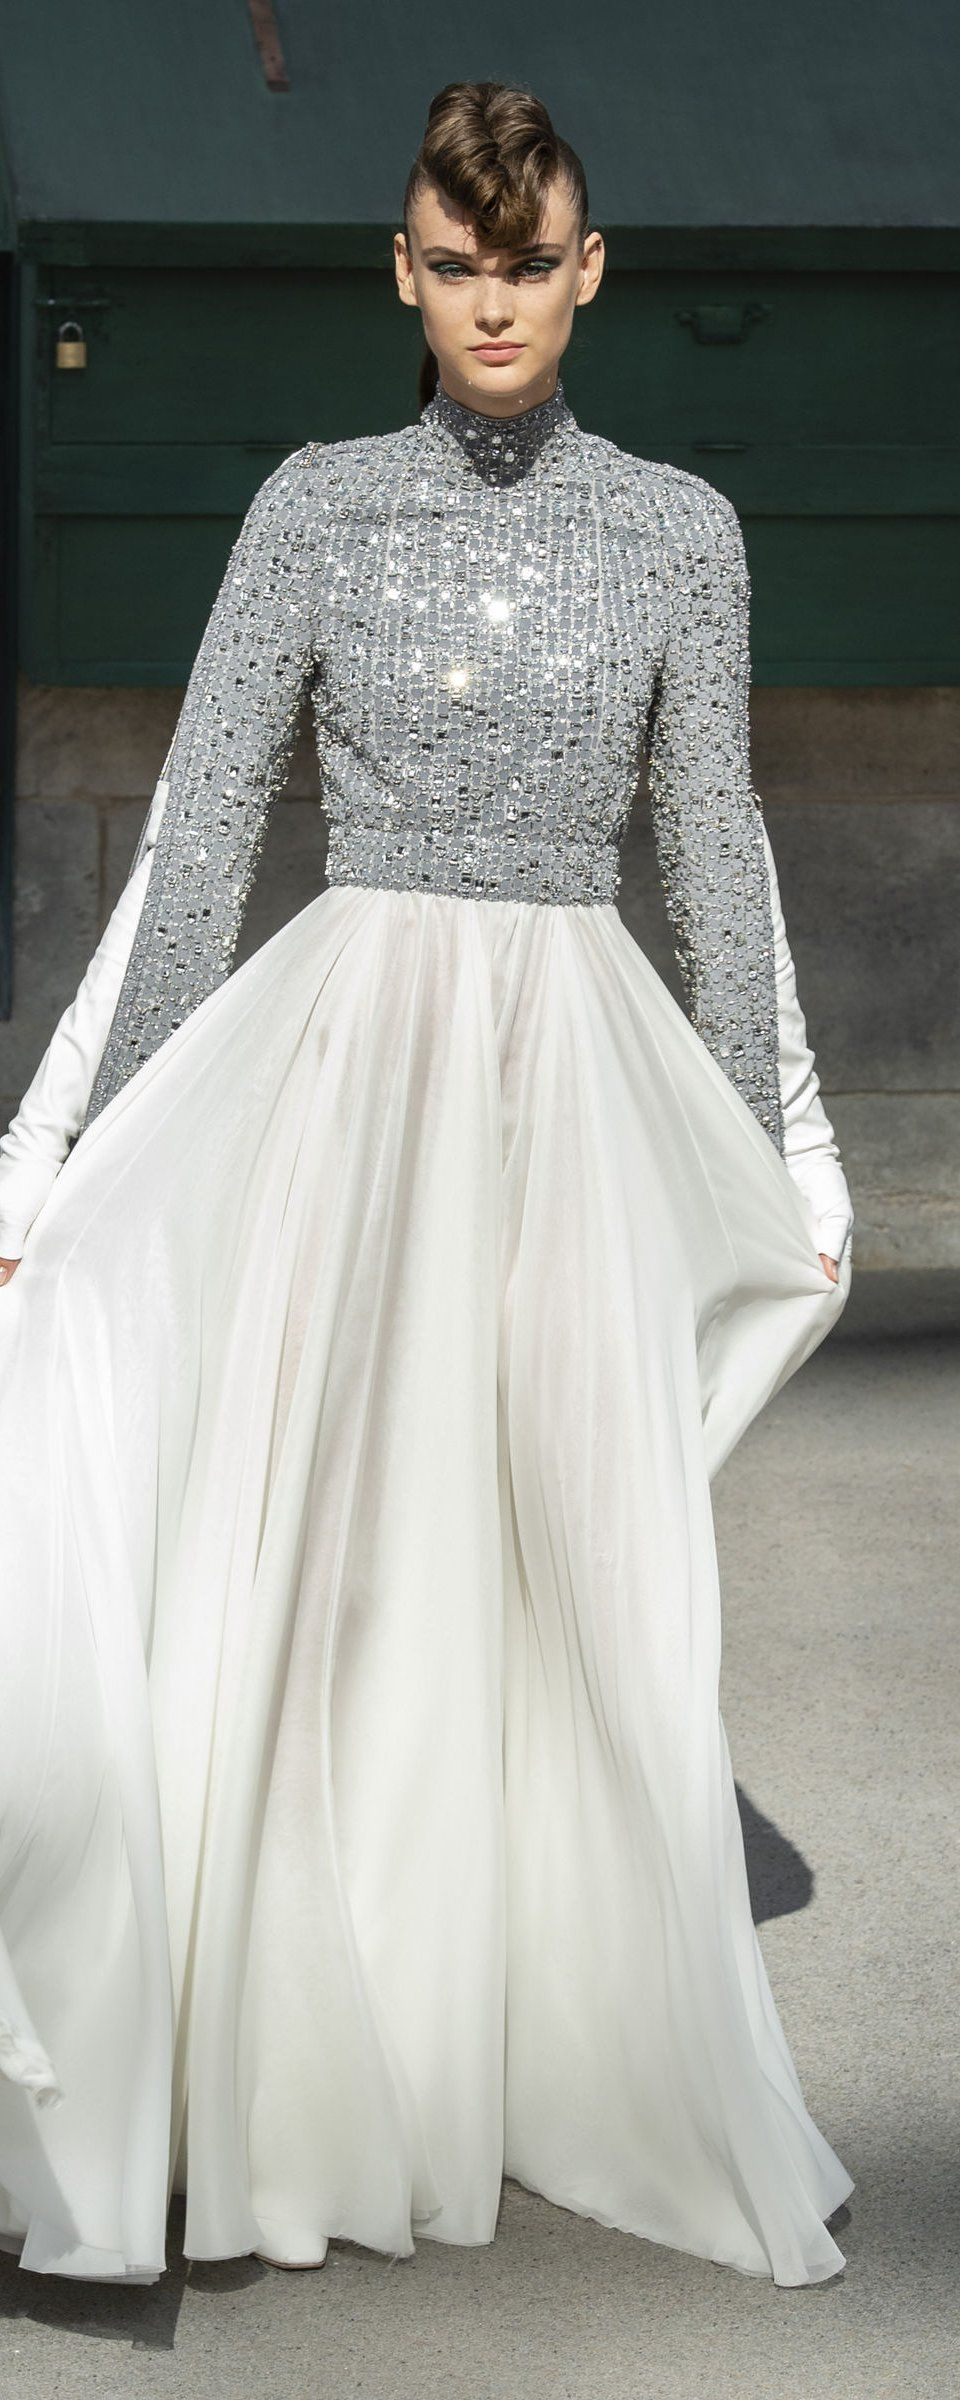 Chanel fallwinter couture fall winter winter and